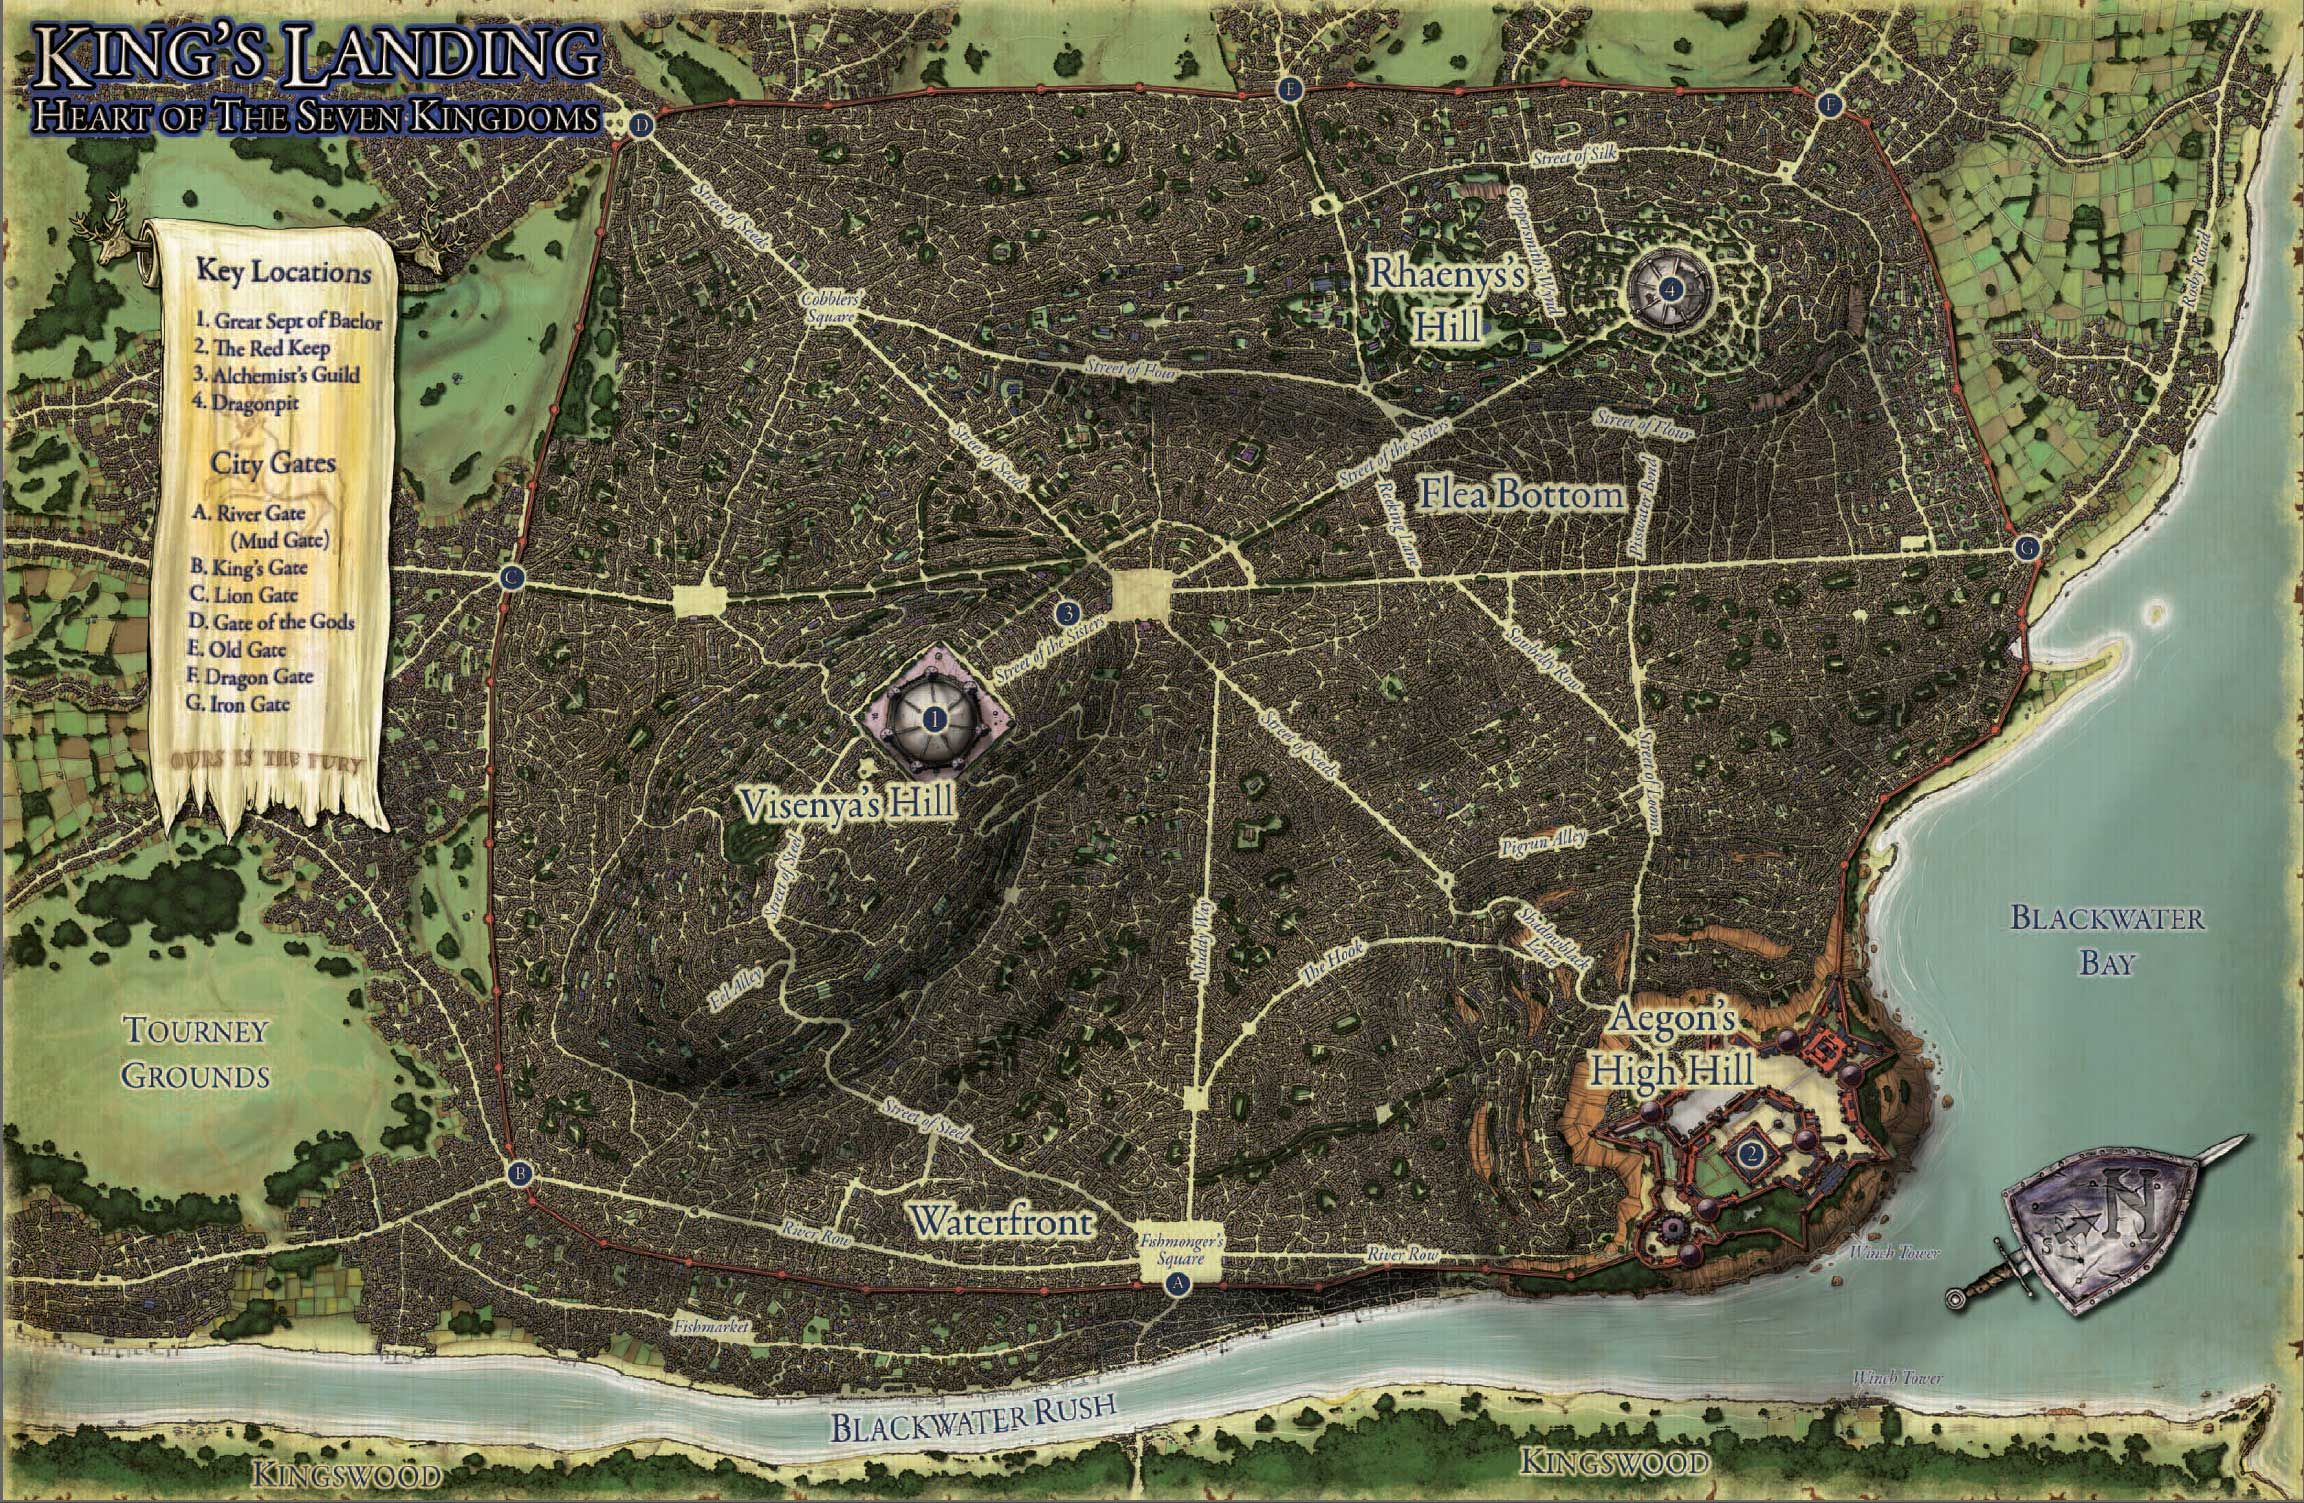 Pin by JuliaB on - A Song of Ice and Fire in 2019 | Game of ... King Of Thrones Map on a clash of kings map, king sitting in throne room, king of towers map, river run condominiums map, king s landing throne room, kingdom clash of the kings map, dothraki on seven kingdoms map, king of thorns map, king of wisconsin map, from gulliver's travels map,